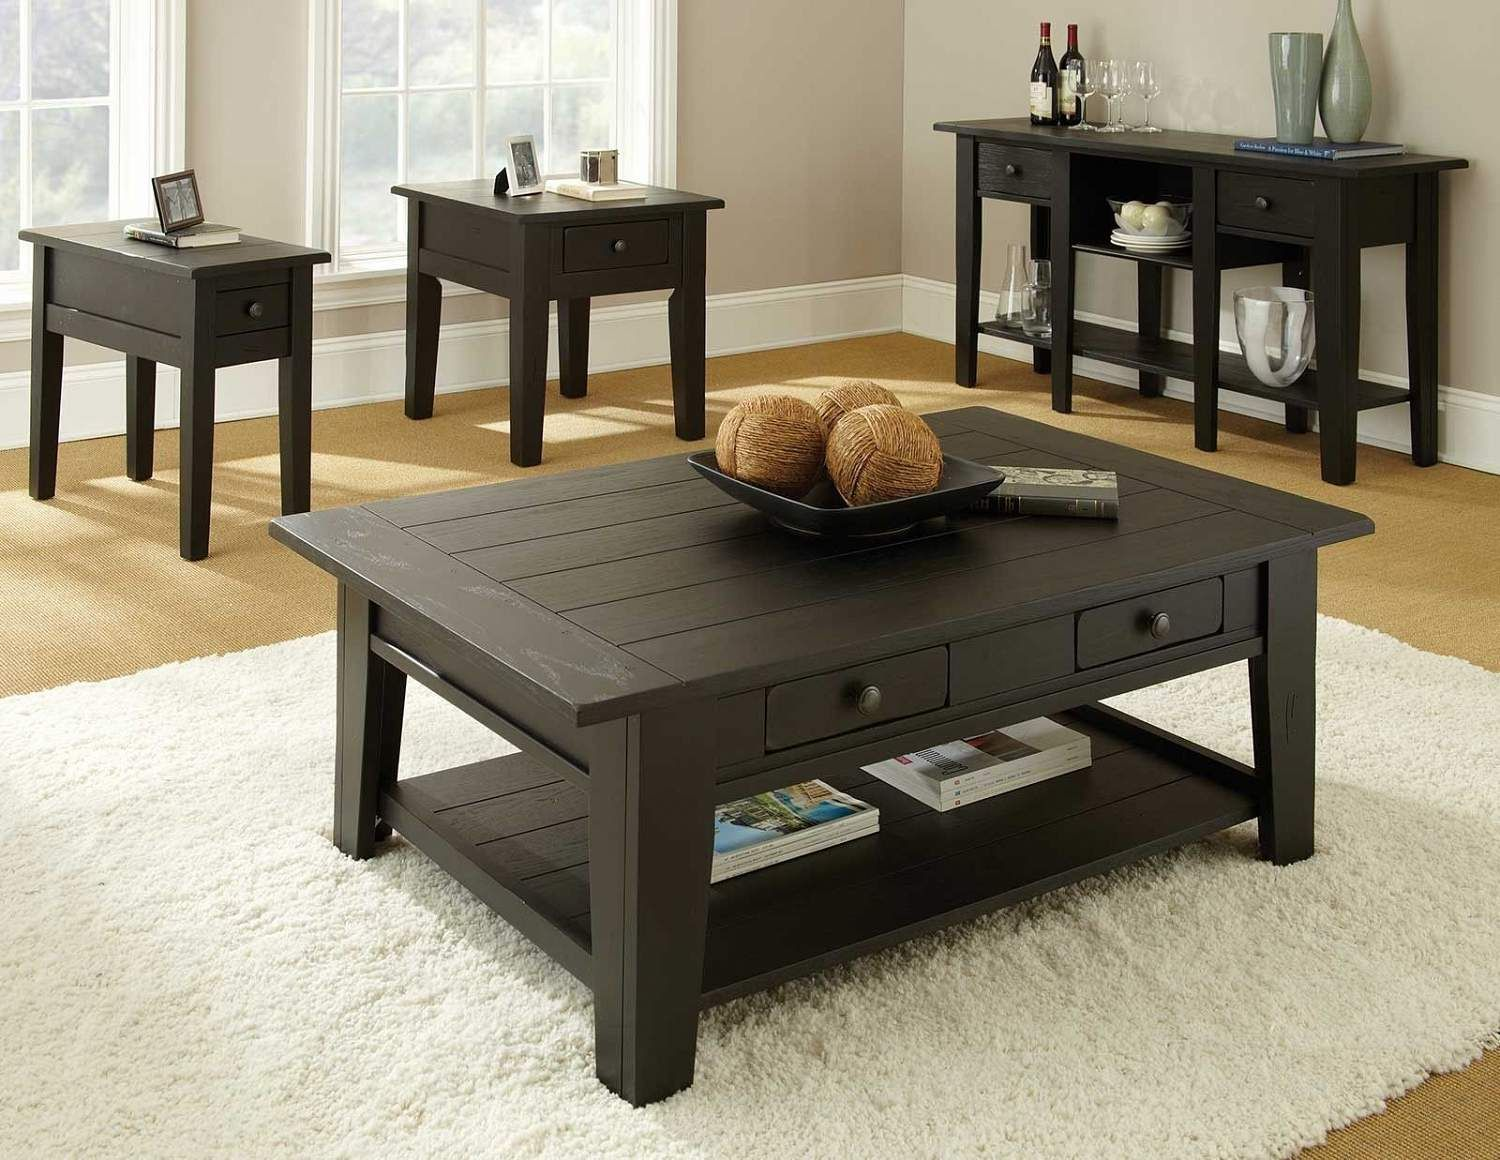 Rubbed Finish Cocktail Table Ffo Home Coffee Table Square Black Coffee Table Sets Craftsman Coffee Tables [ 1160 x 1500 Pixel ]